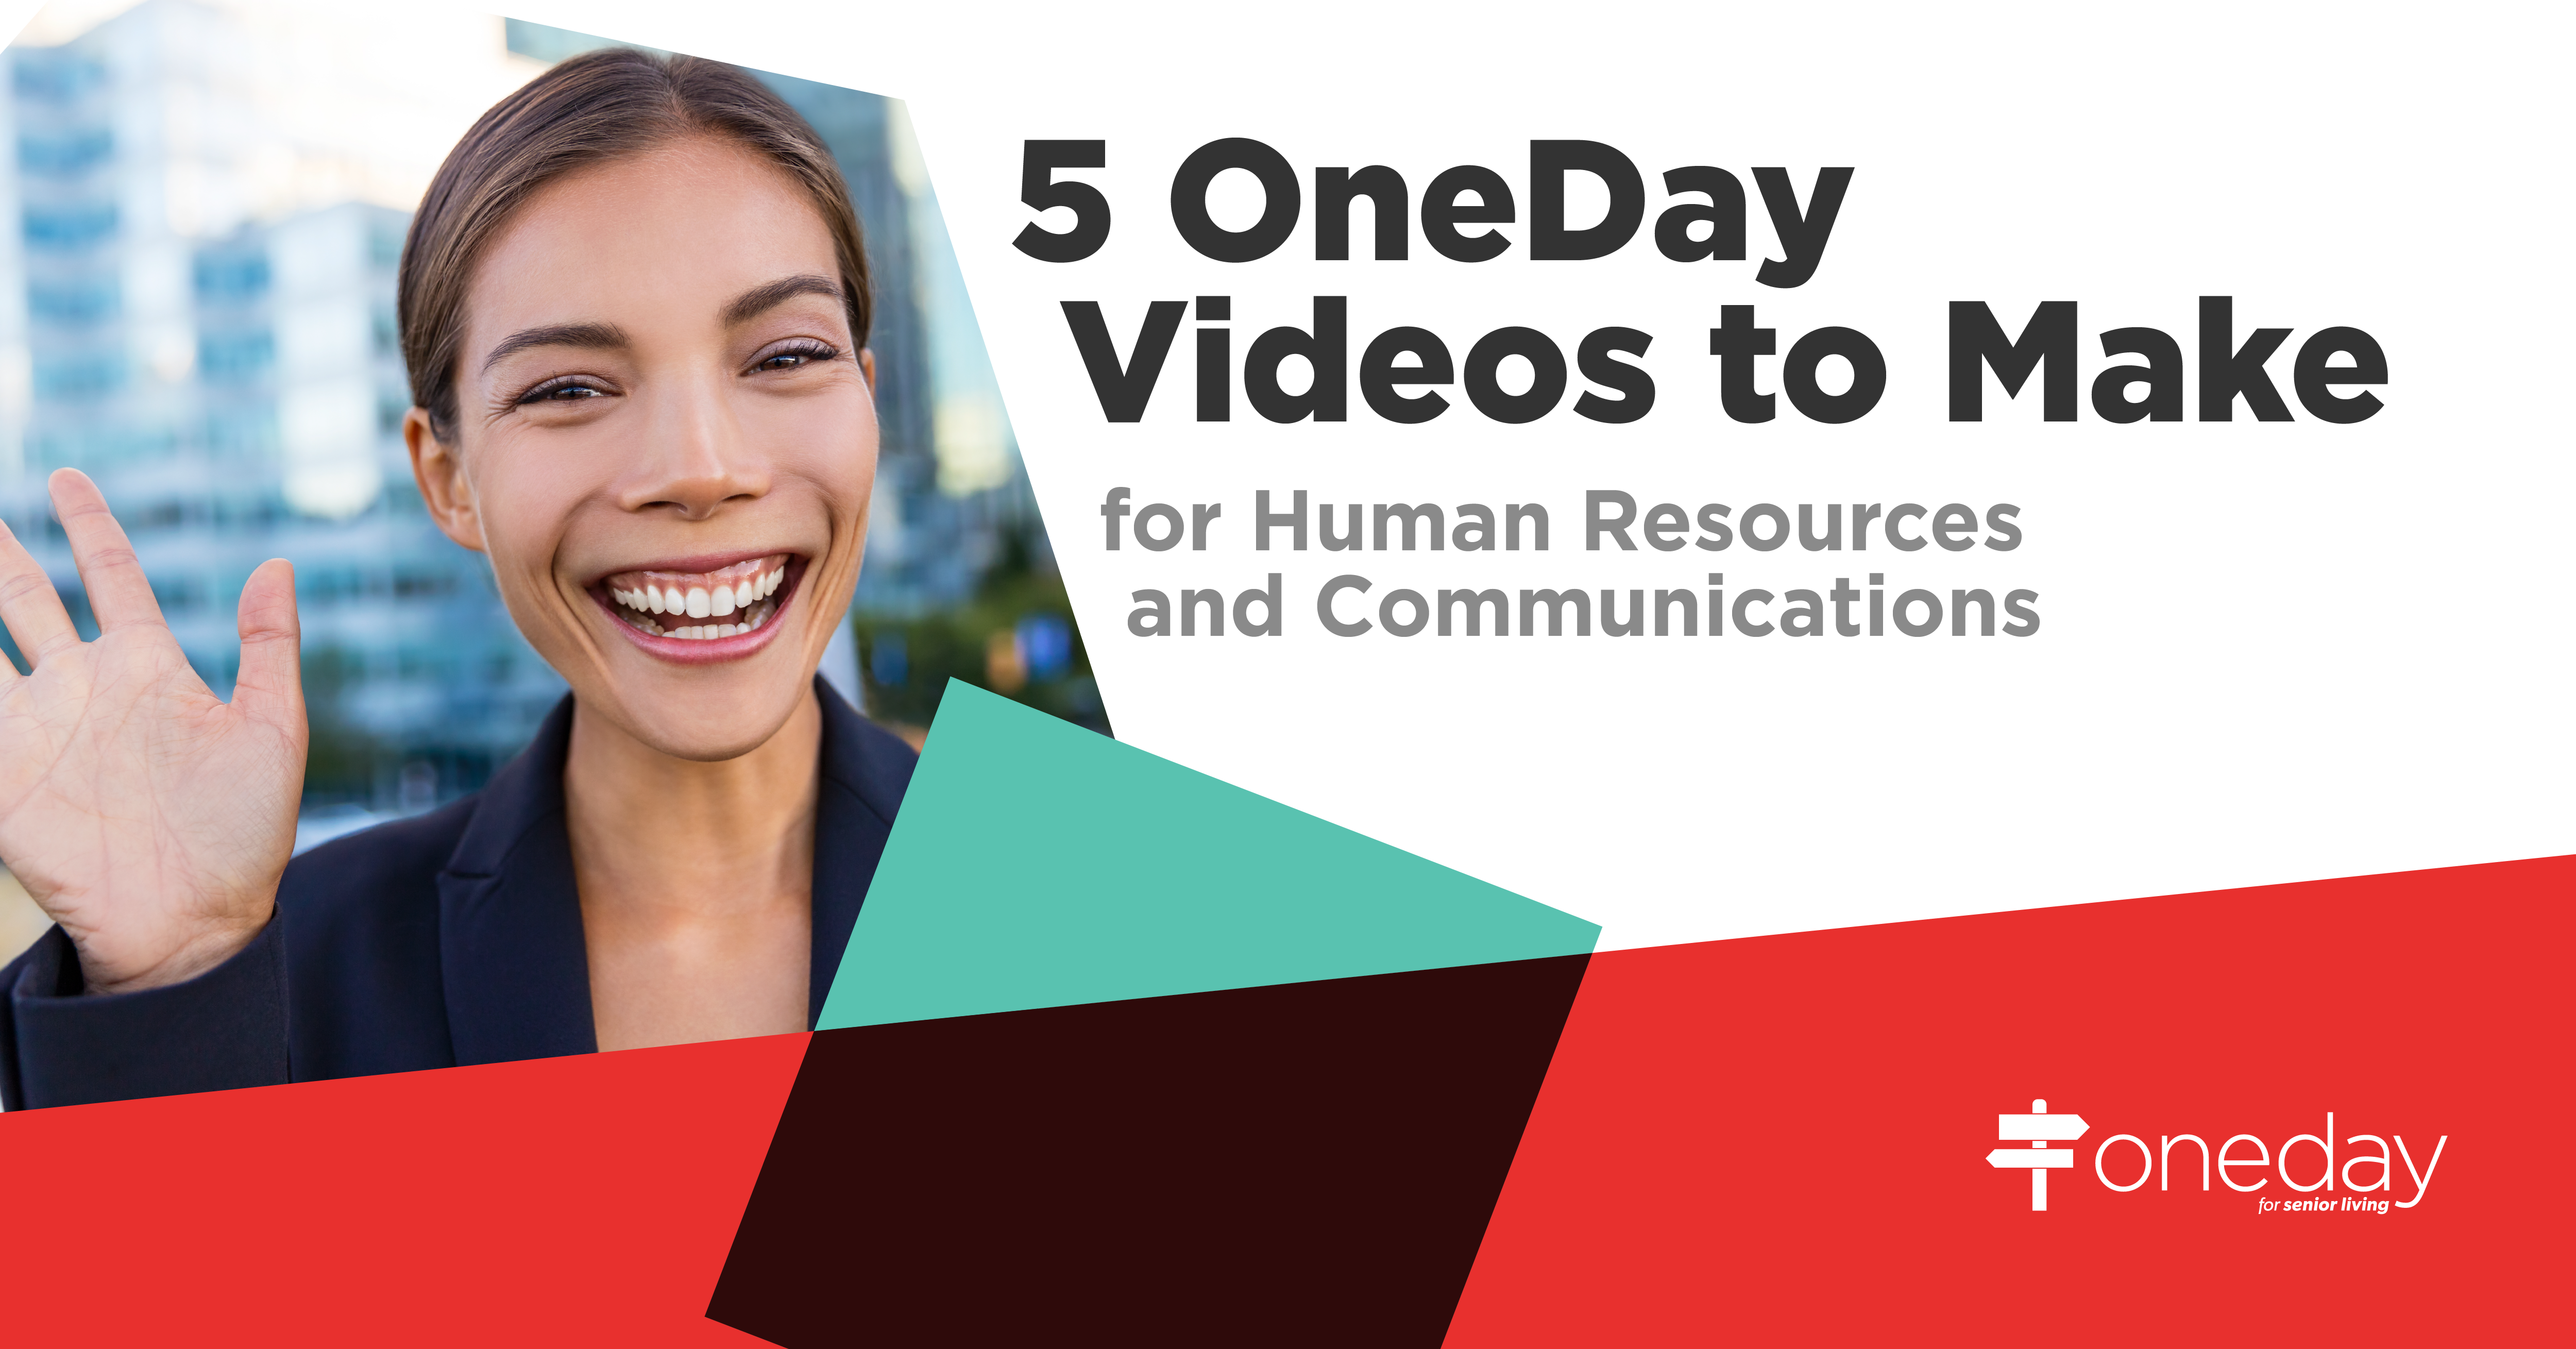 Video content ideas from OneDay's team that senior living hiring managers can use to boost their recruiting and start attracting top talent.